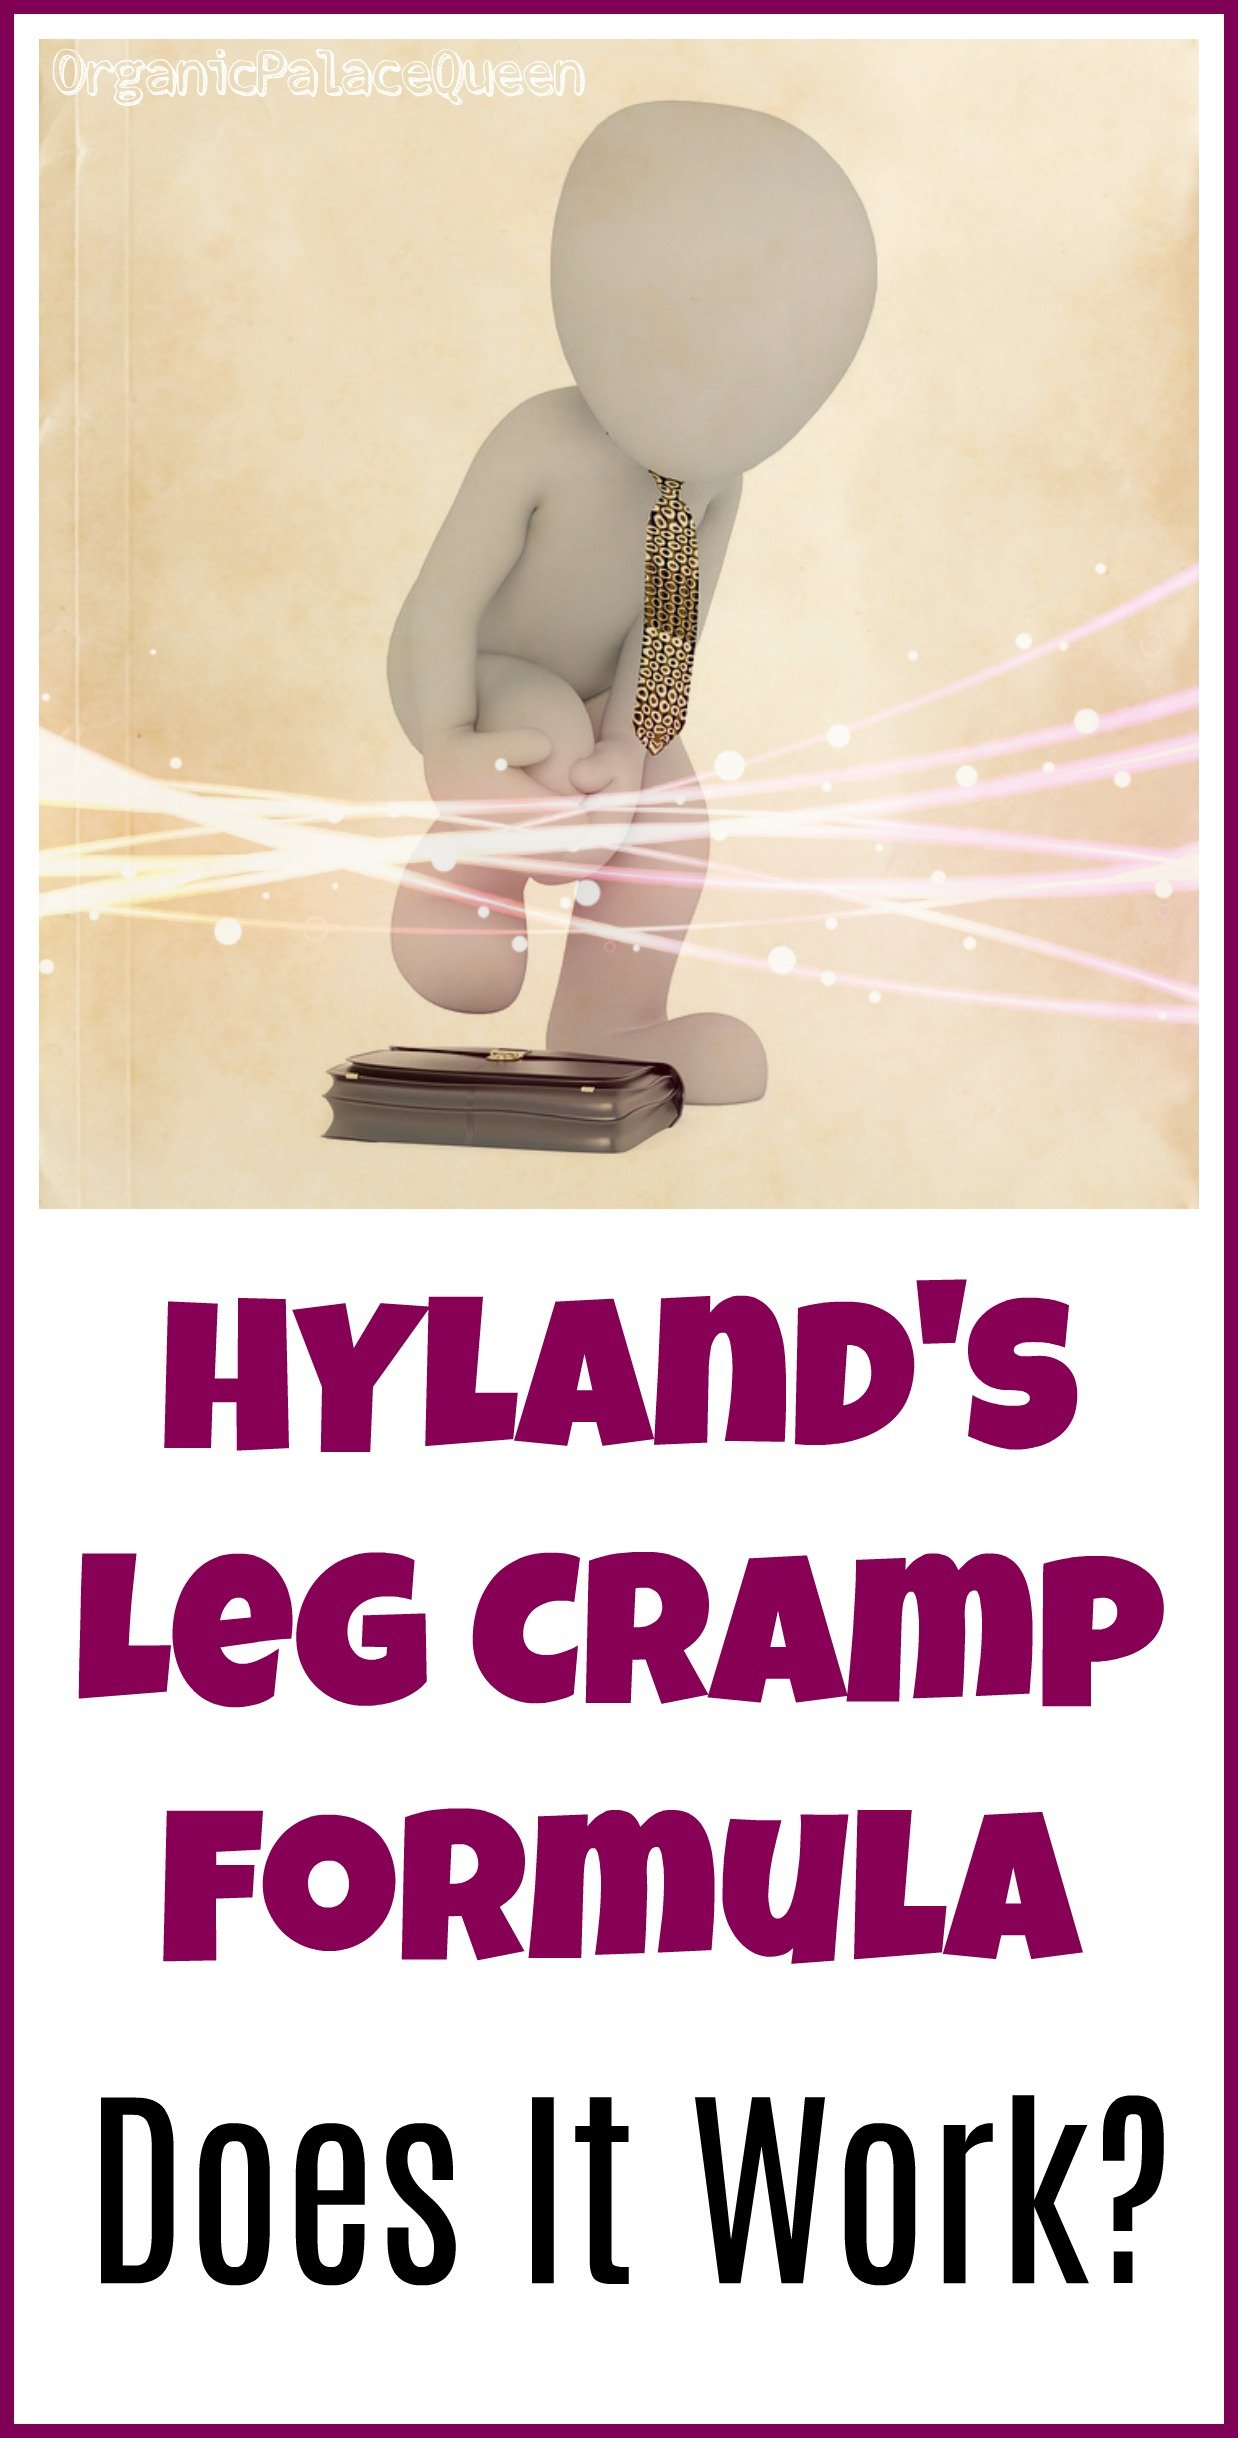 Does Hyland's leg cramp formula work